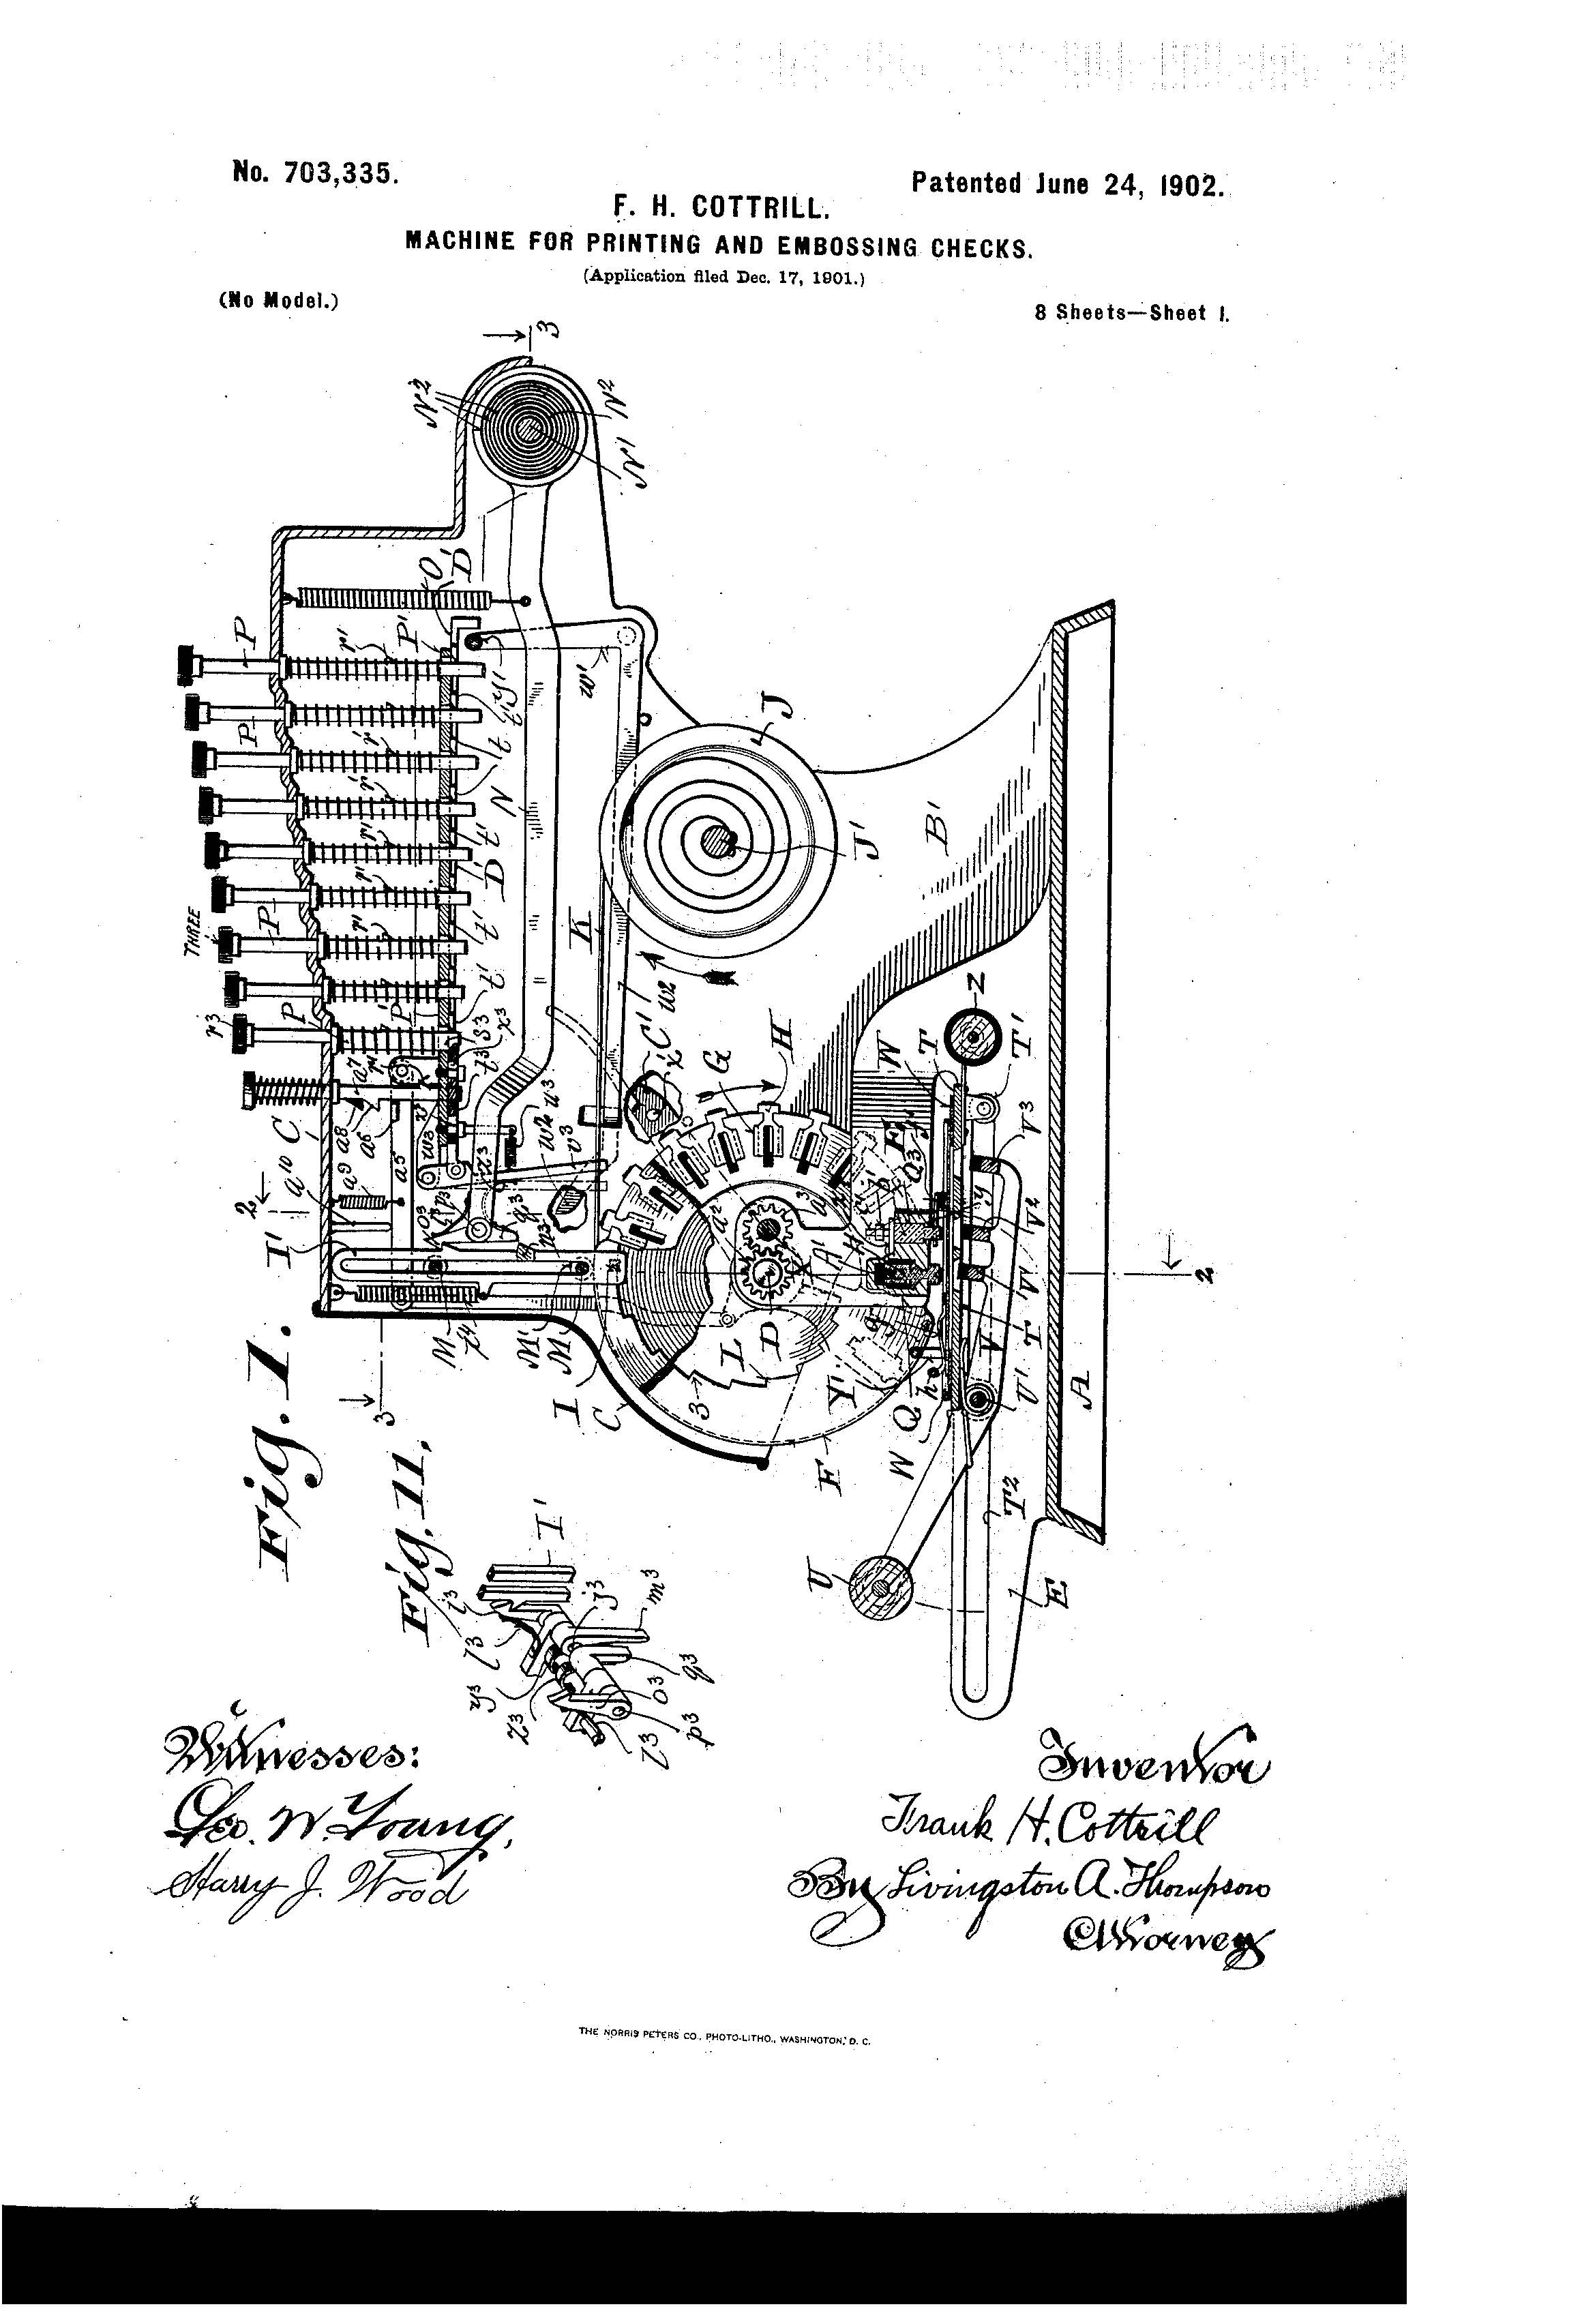 Patent of the Day: Machine for Printing and Embossing Checks